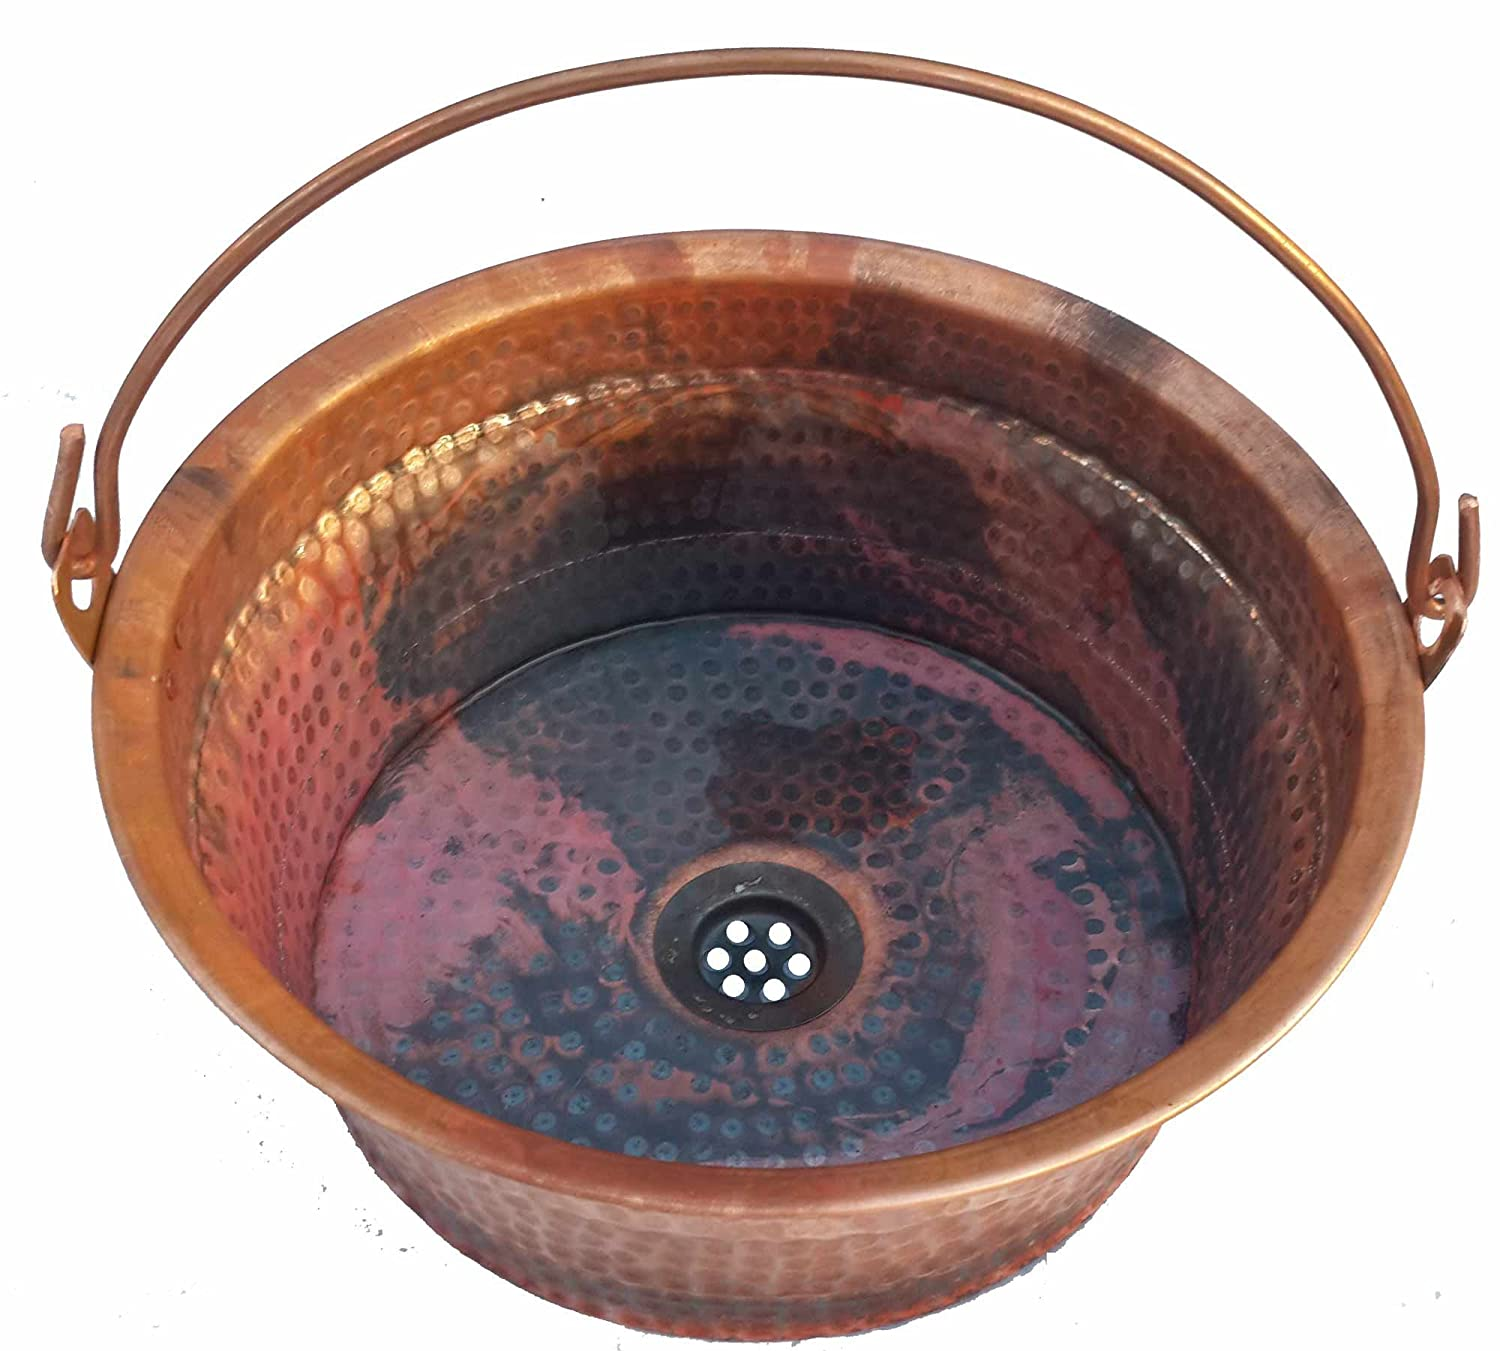 Egypt gift shops Rustic Natural Fire Treated Copper Vessel Bucket Vessel Top Mount Bath Room Sink Improvement Decor Updating